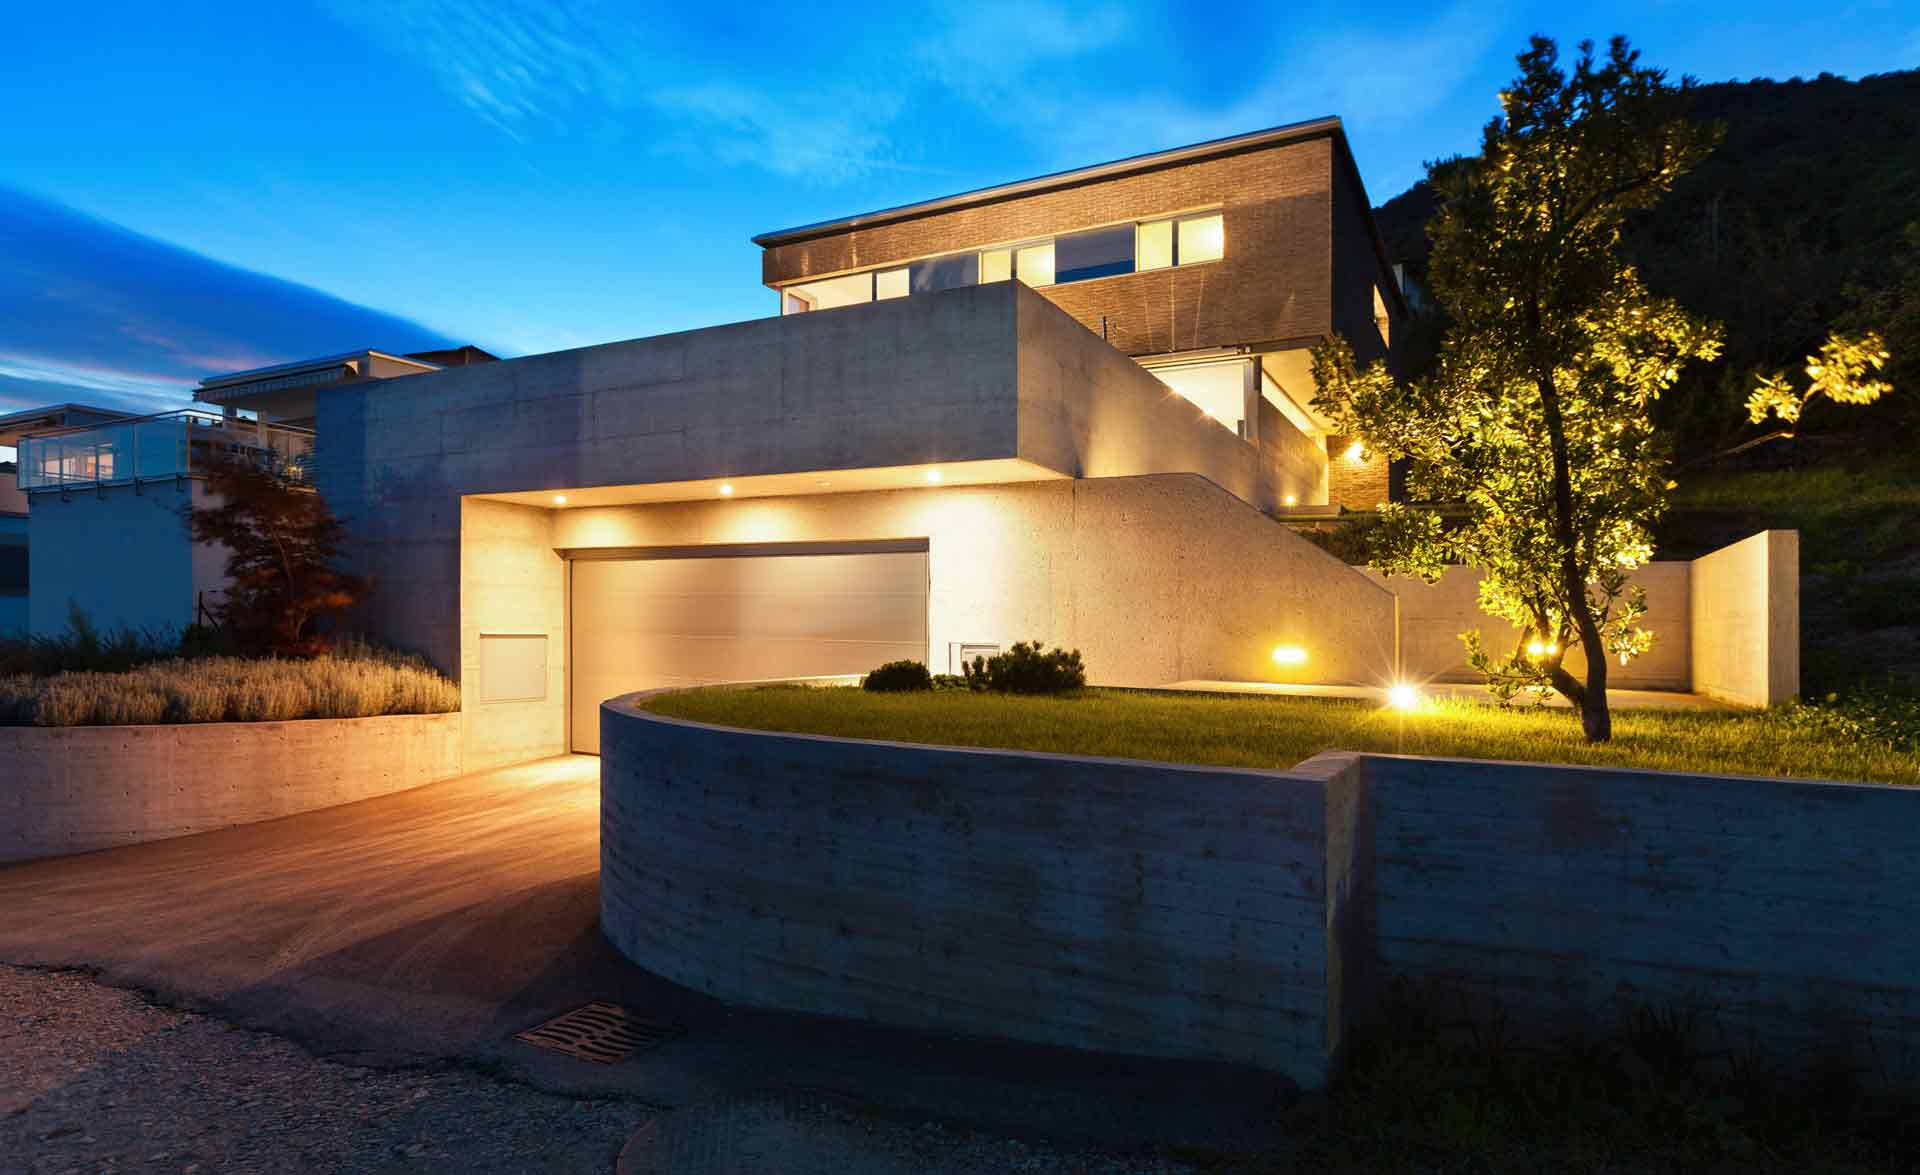 Exterior lighting by our electrical contractors in Geelong